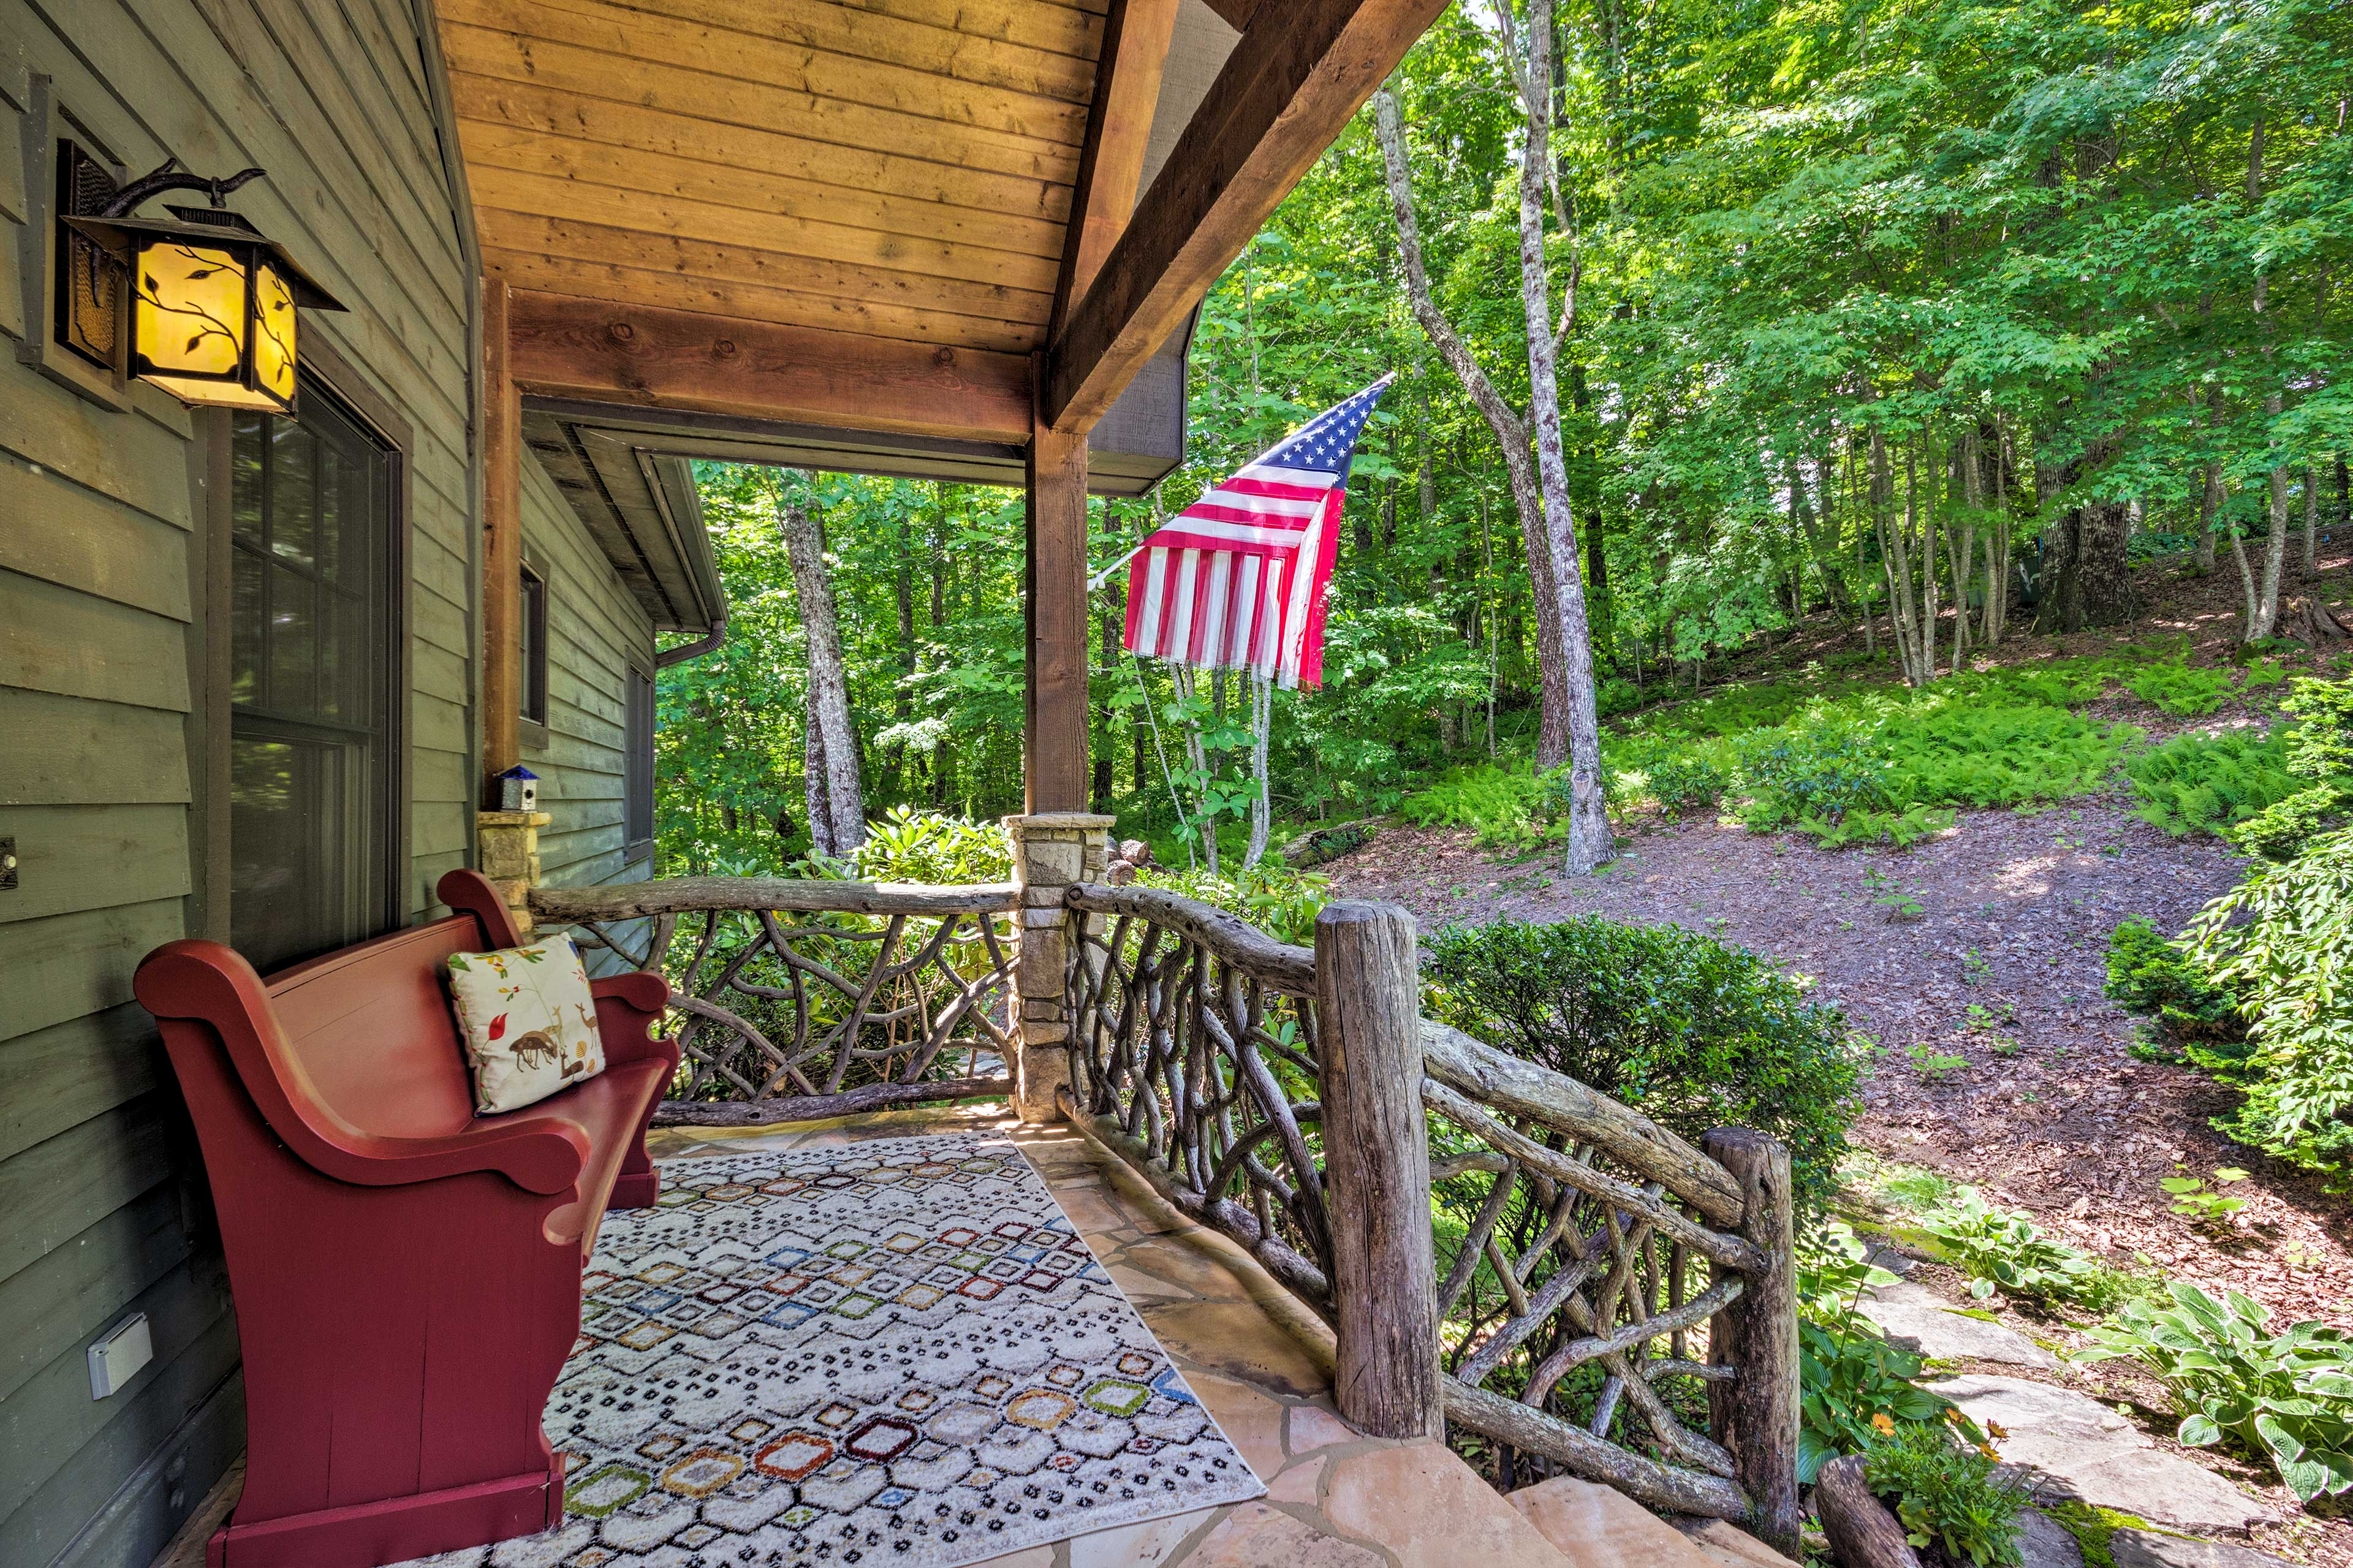 Relax with a cup of coffee on the front porch.